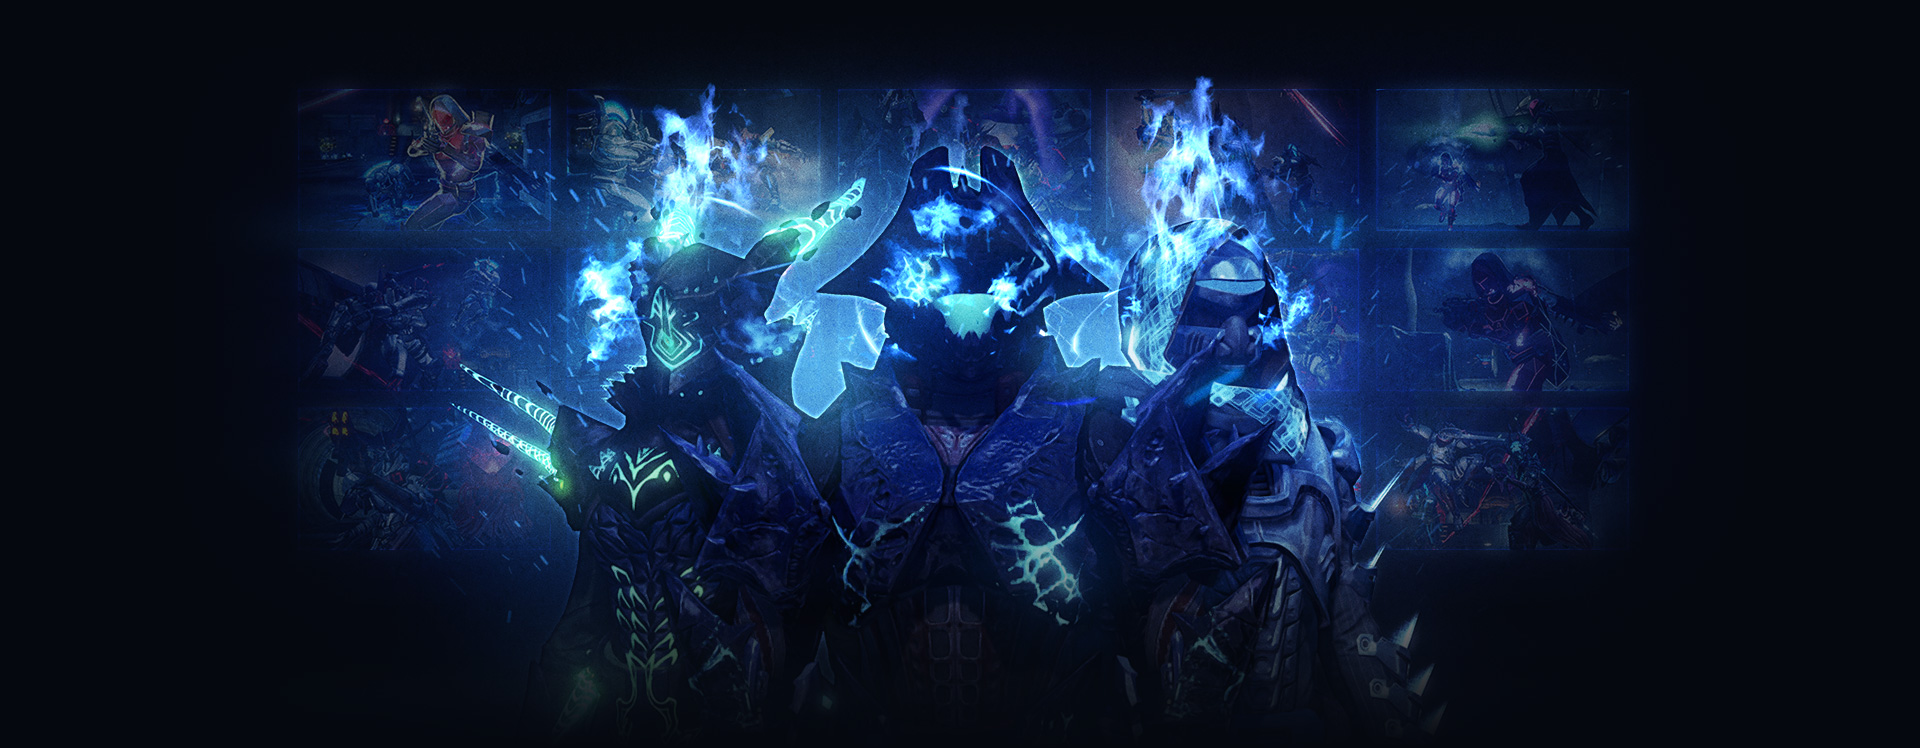 destiny how to get age of triumph ornaments